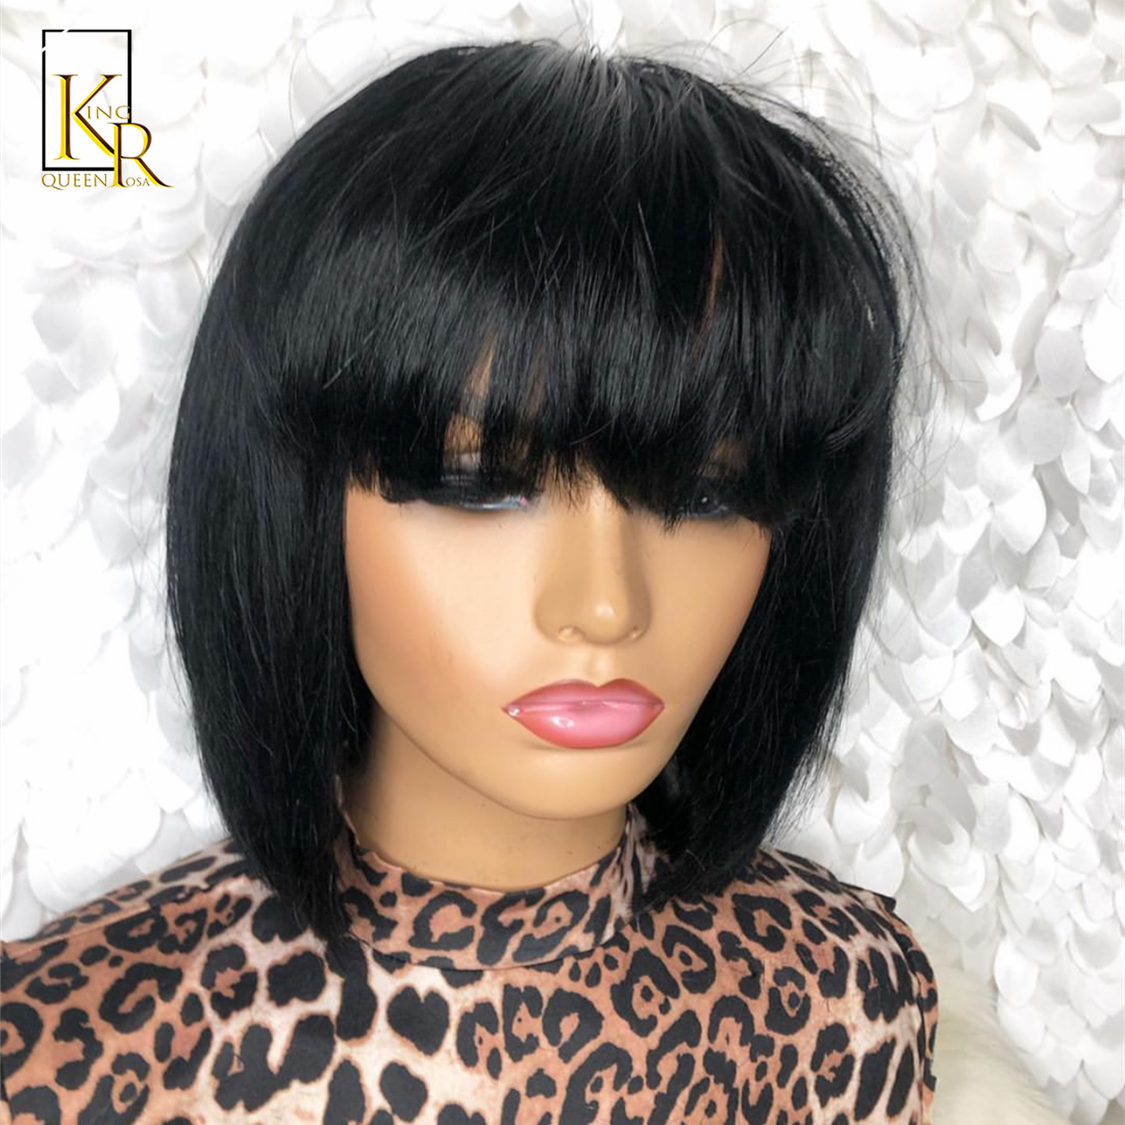 13*4 Short Bob Wig Brazilian Lace Front Human Hair Wigs With Bangs Pre-Plucked Natural Color Bleached Knots Remy Hair 150% Wig